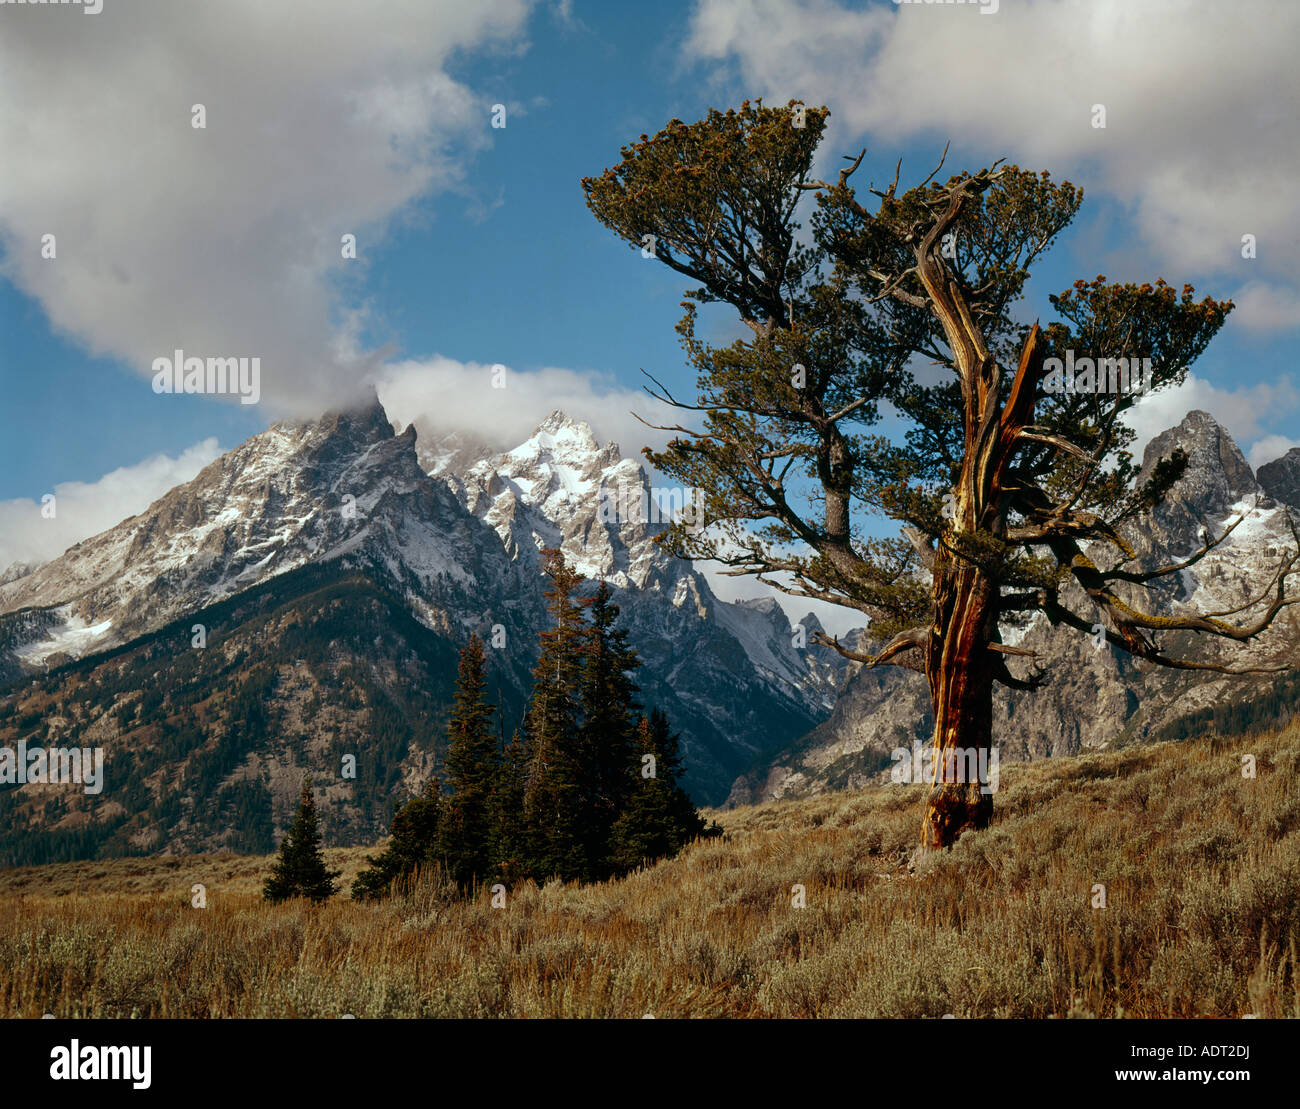 Old Limber Pine tree frames a view of the Teton mountain peaks in ...